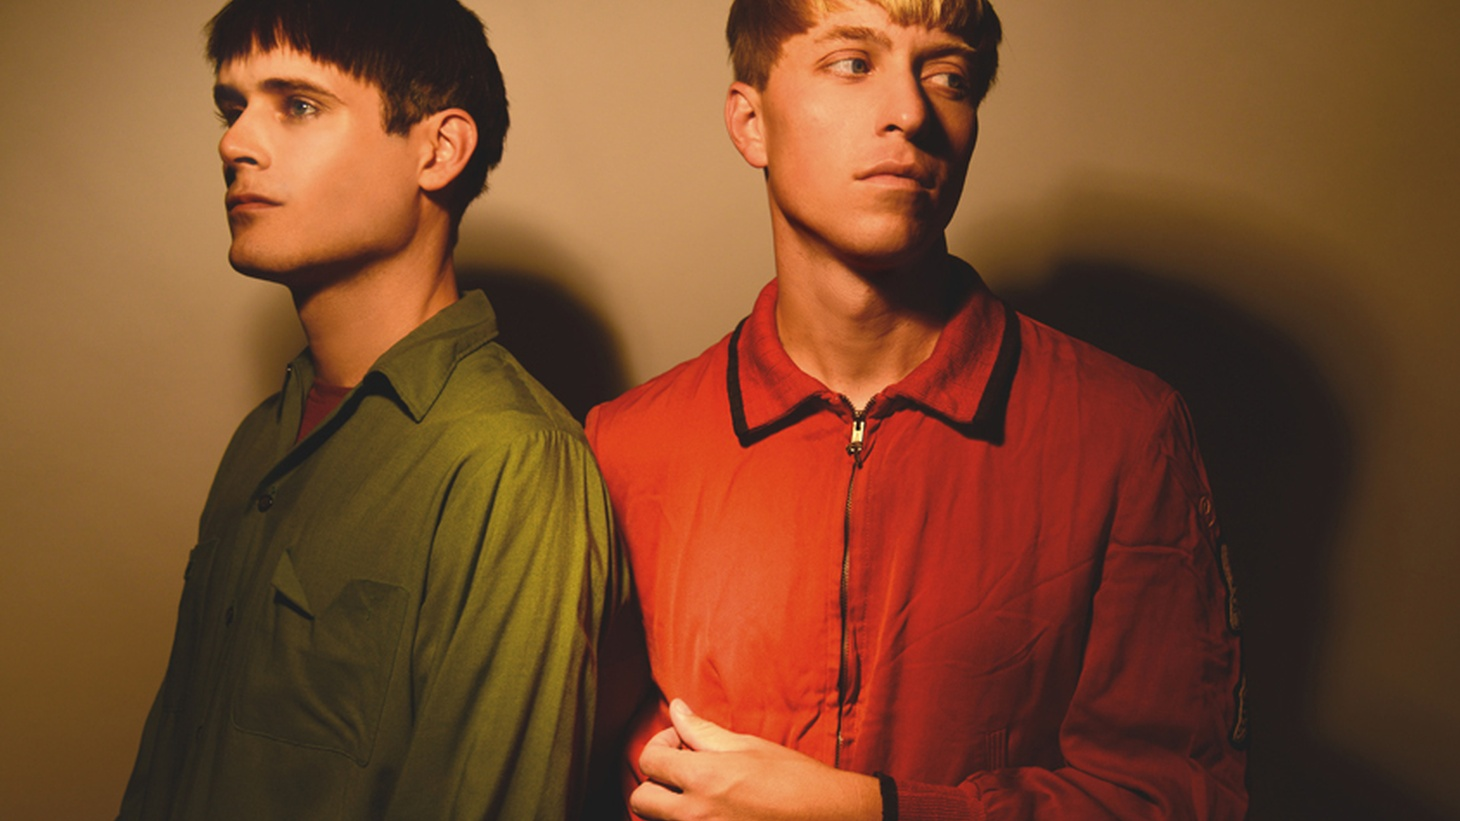 """The Drums have consistently released great pop tunes and their latest album is no exception. Today's Top Tune is the infectious single """"Kiss Me Again""""."""